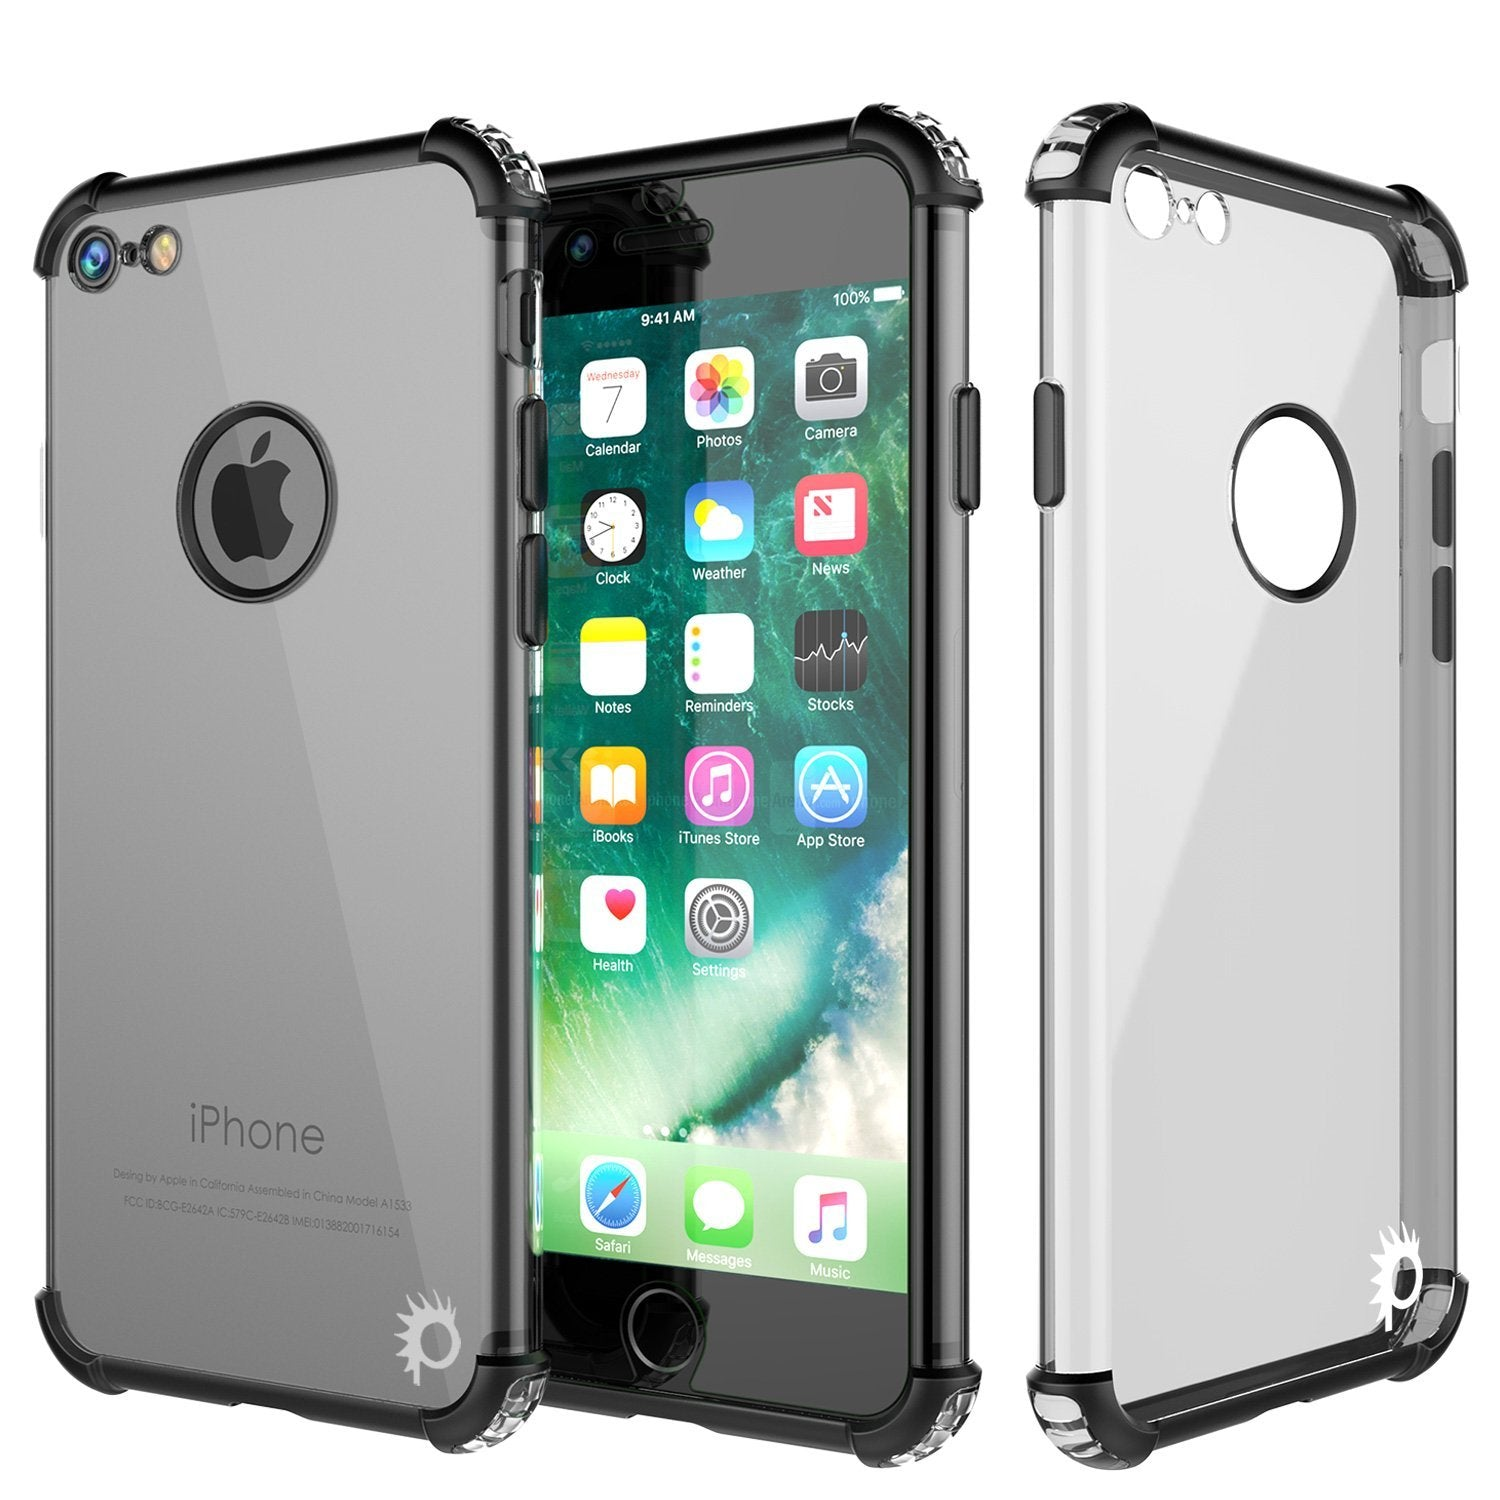 "iPhone SE (4.7"") Case, Punkcase [BLAZE SERIES] Protective Cover W/ PunkShield Screen Protector [Shockproof] [Slim Fit] for Apple iPhone [Black]"